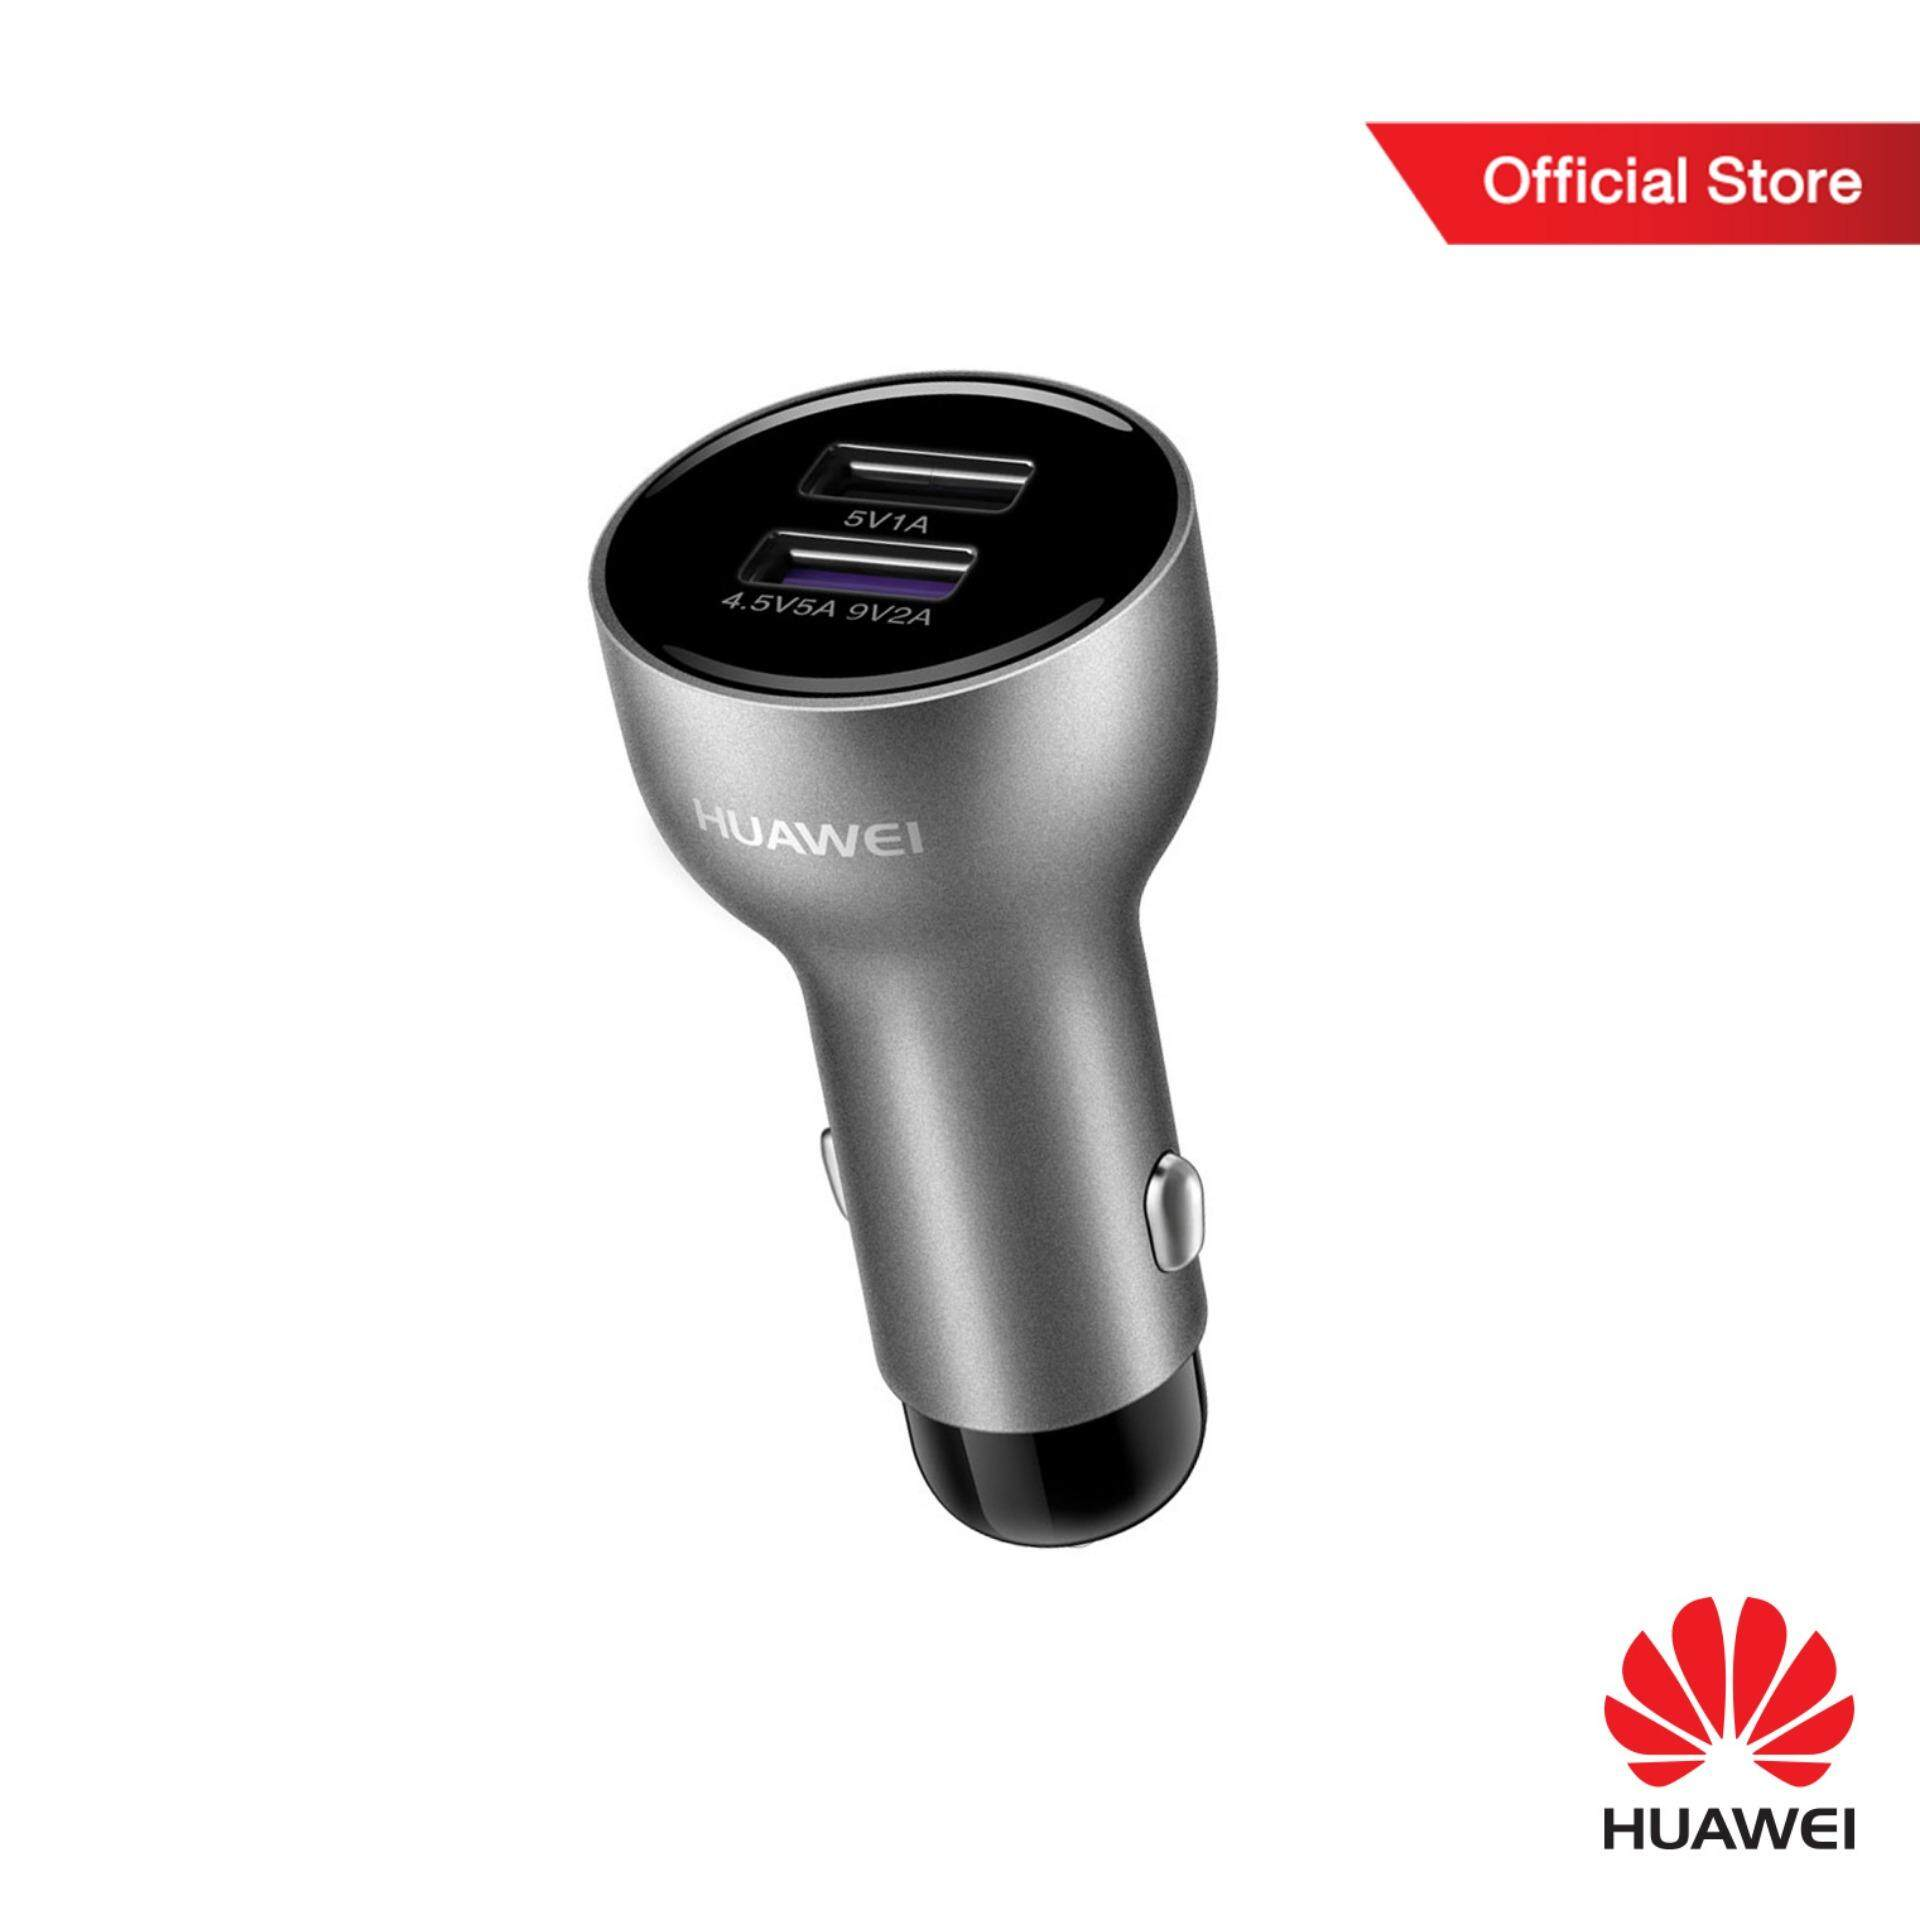 Huawei SuperCharge Car Charge rSilver